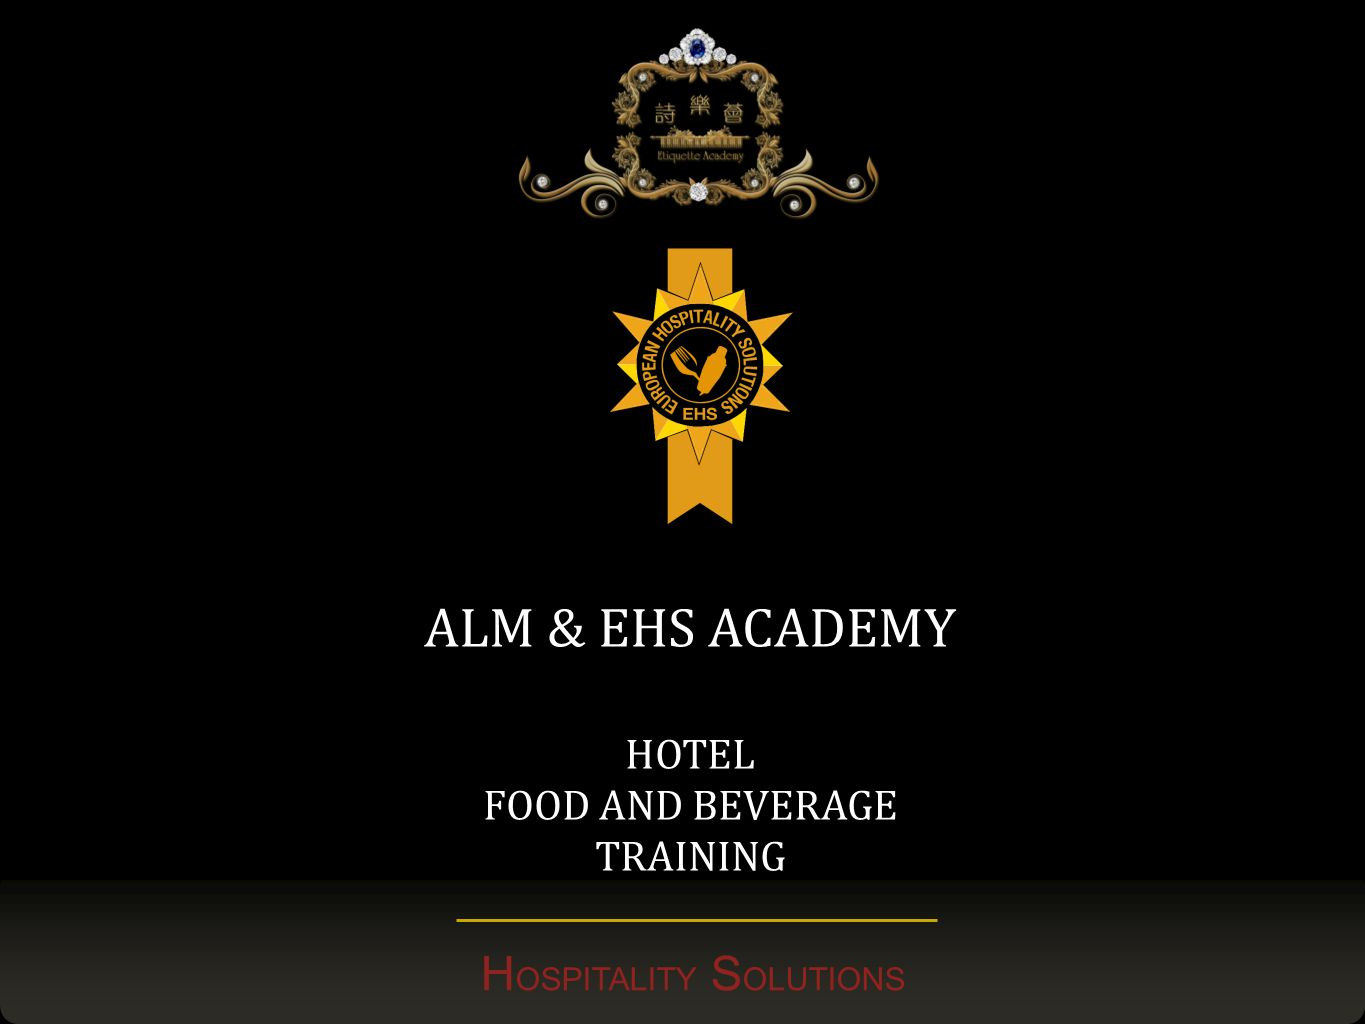 H OSPITALITY S OLUTIONS ALM & EHS ACADEMY HOTEL FOOD AND BEVERAGE TRAINING